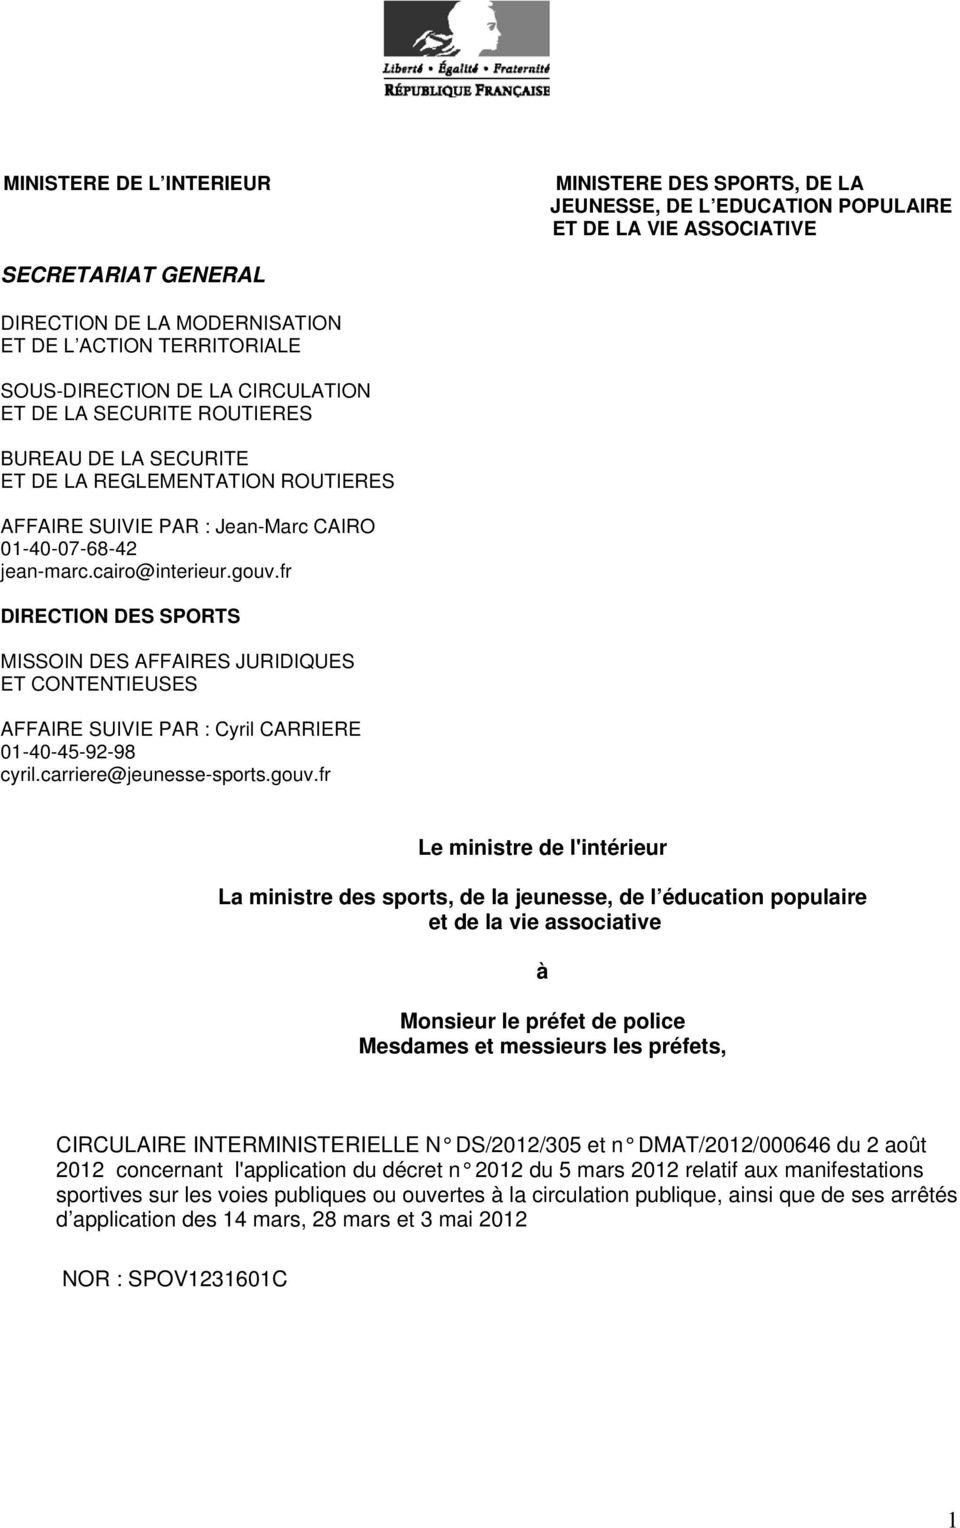 fr DIRECTION DES SPORTS MISSOIN DES AFFAIRES JURIDIQUES ET CONTENTIEUSES AFFAIRE SUIVIE PAR : Cyril CARRIERE 01-40-45-92-98 cyril.carriere@jeunesse-sports.gouv.